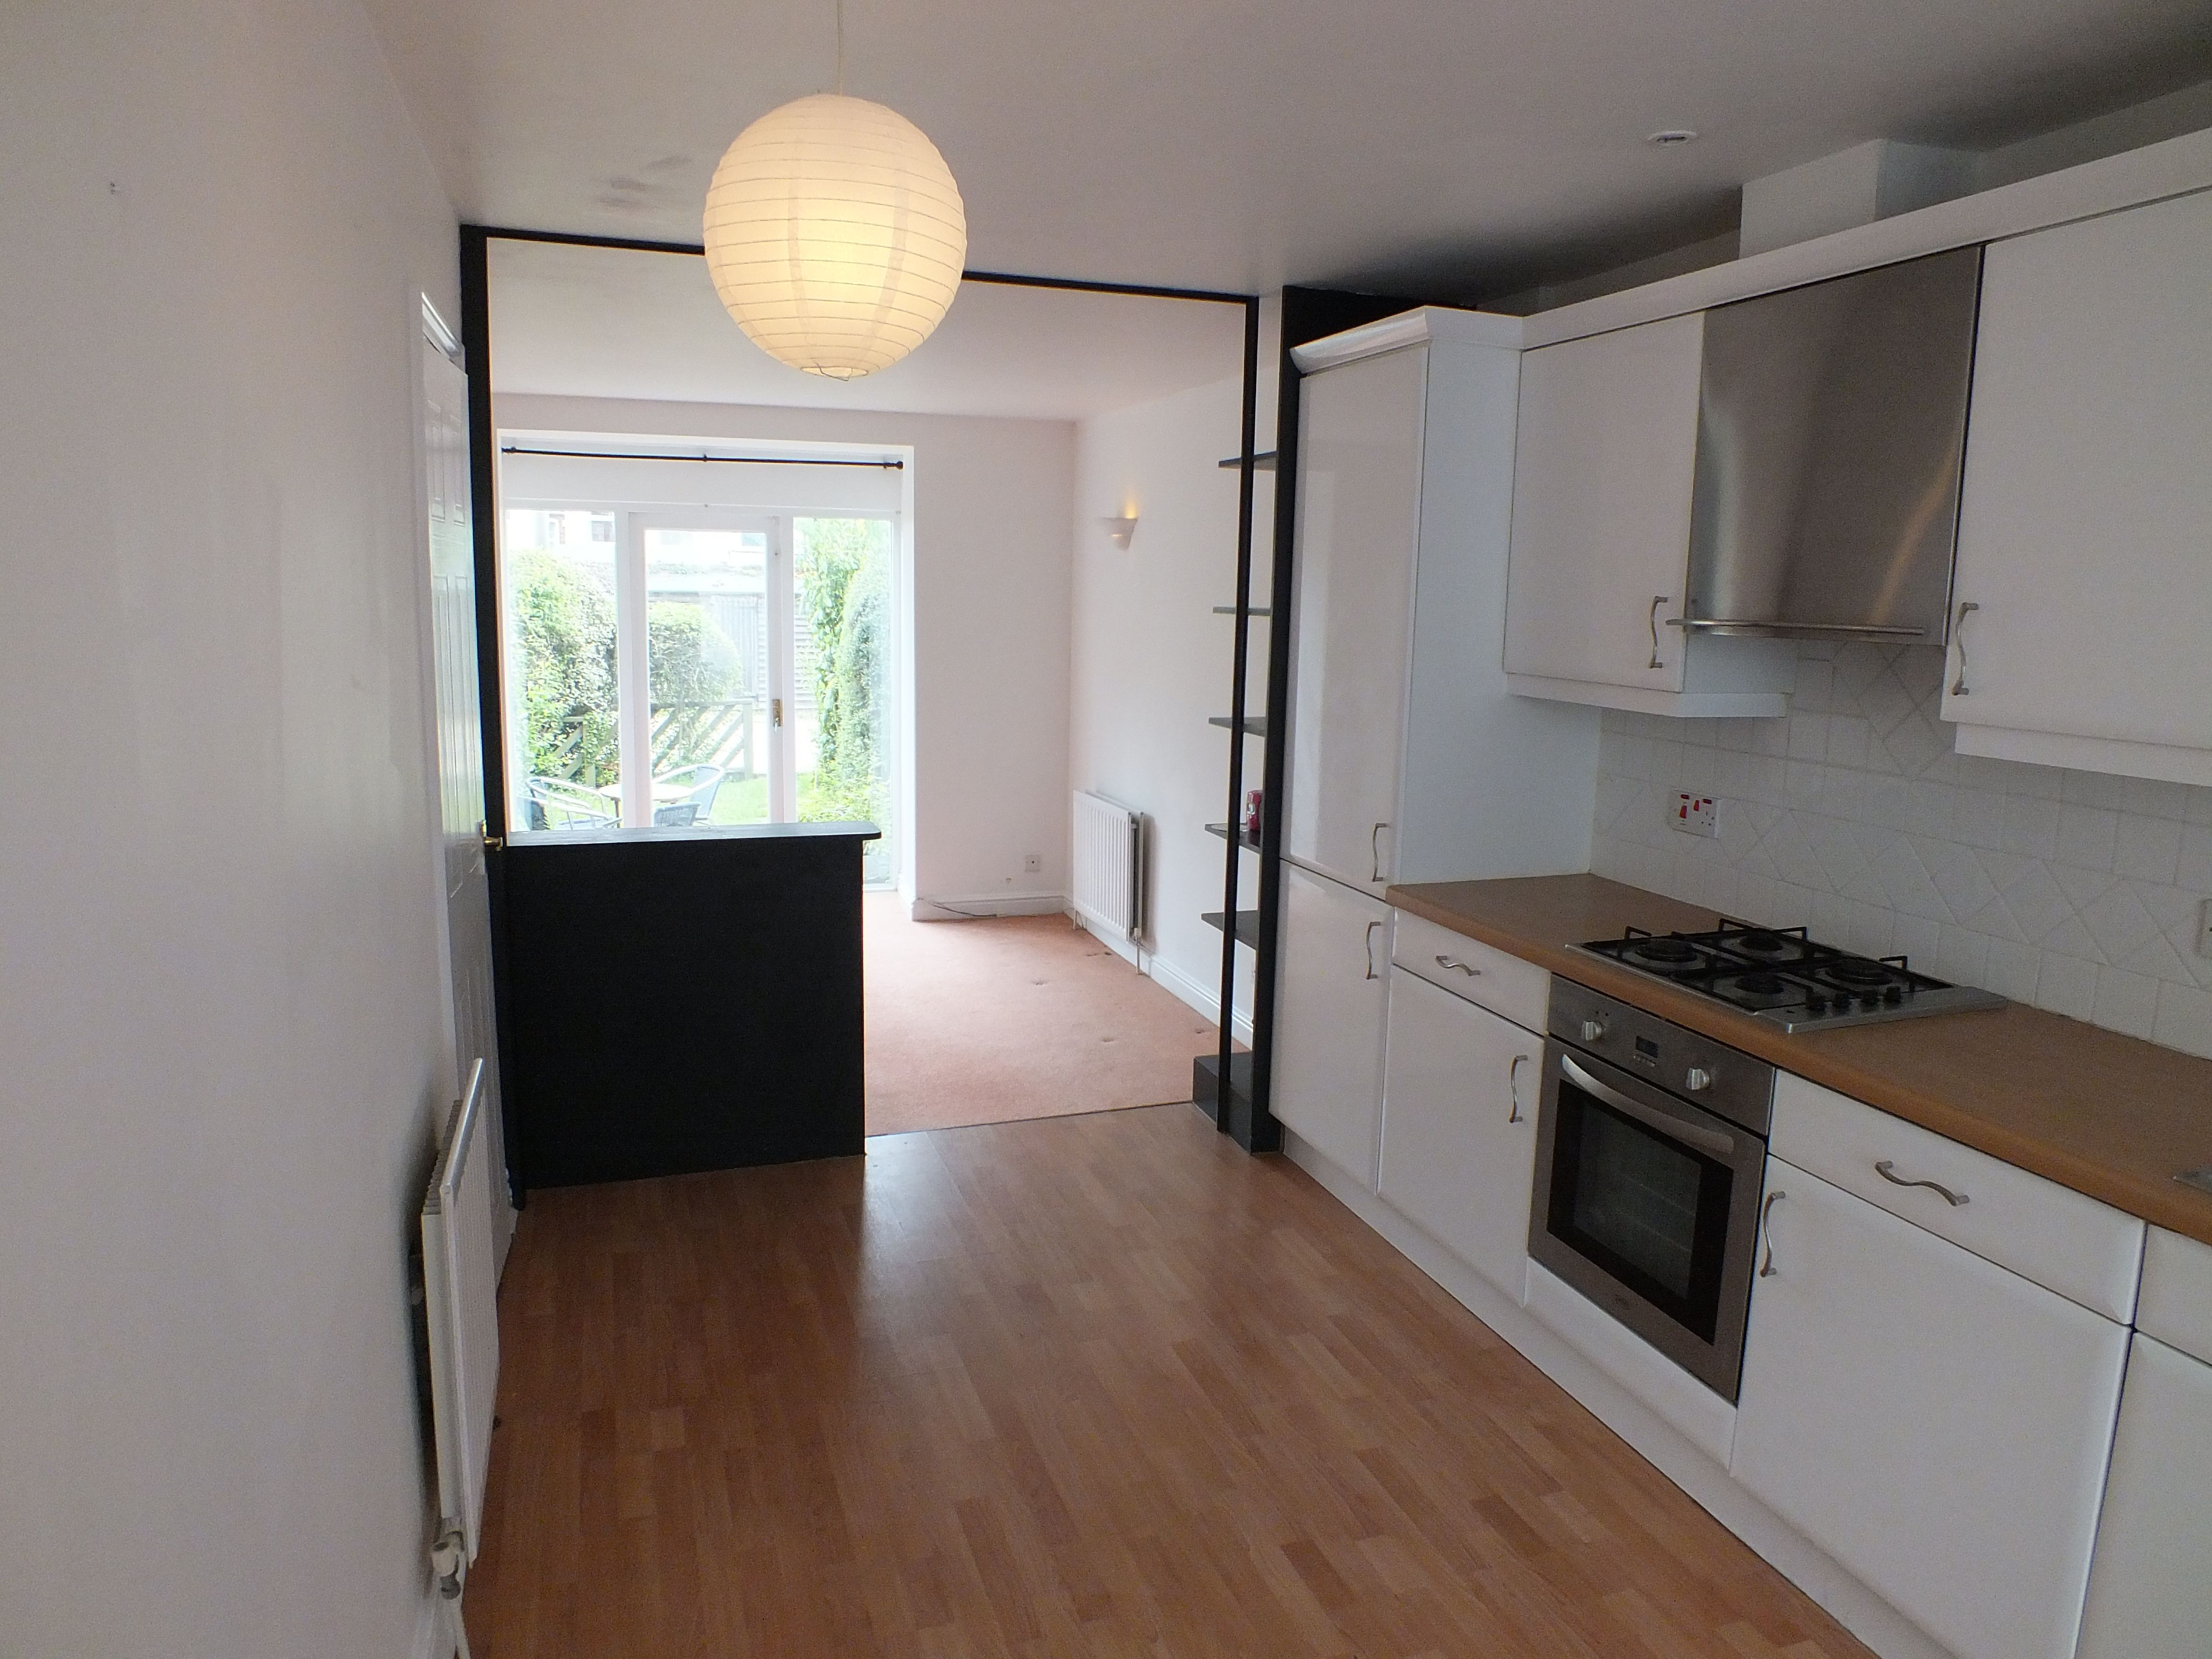 Open Plan Living Bright And Airy With All Mod Cons St Jacob S